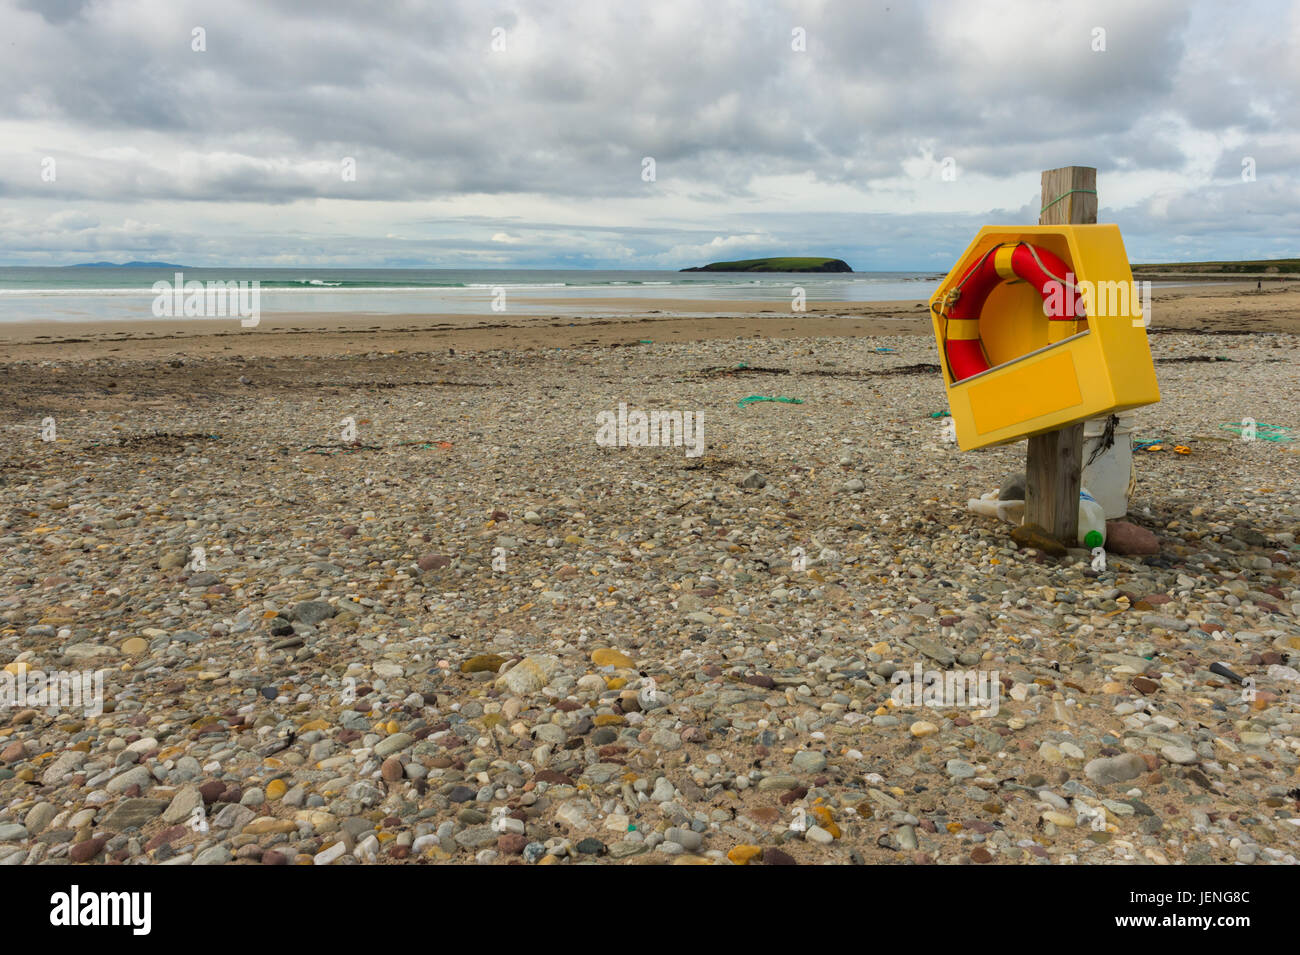 A life ring at keel beach, Achill, Co. Mayo. - Stock Image